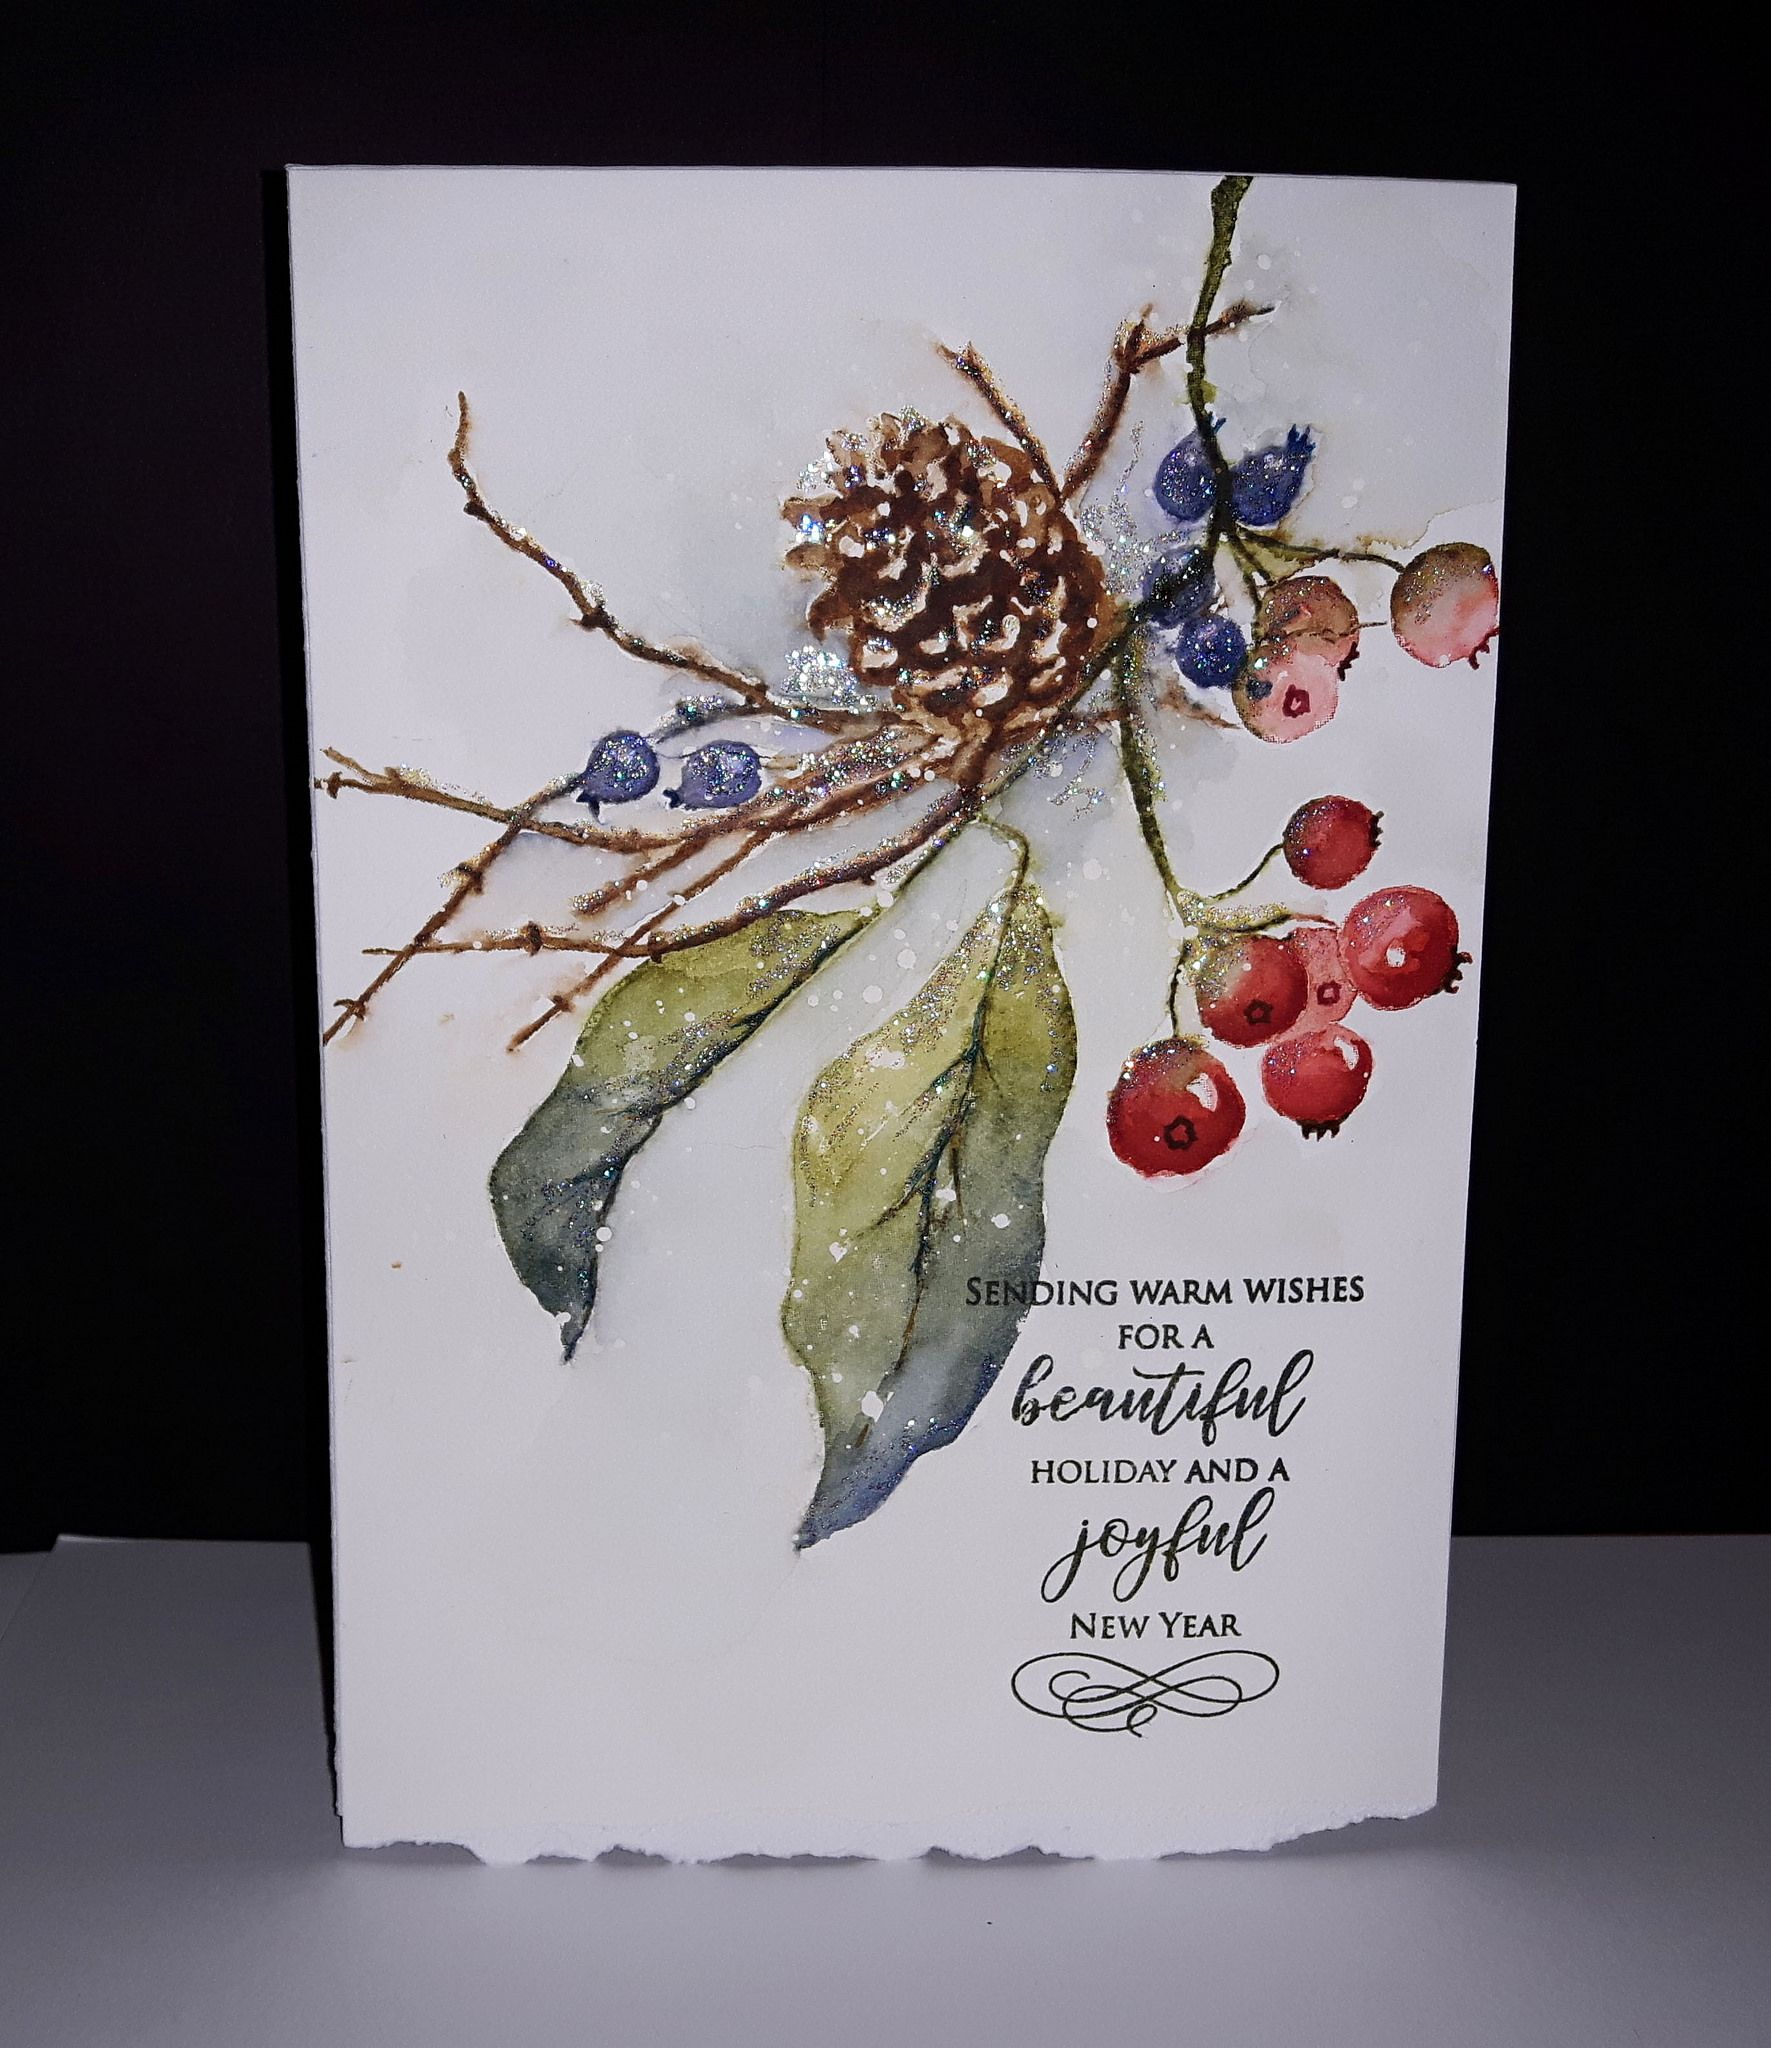 20180915 204420 In 2020 Watercolor Christmas Cards Painted